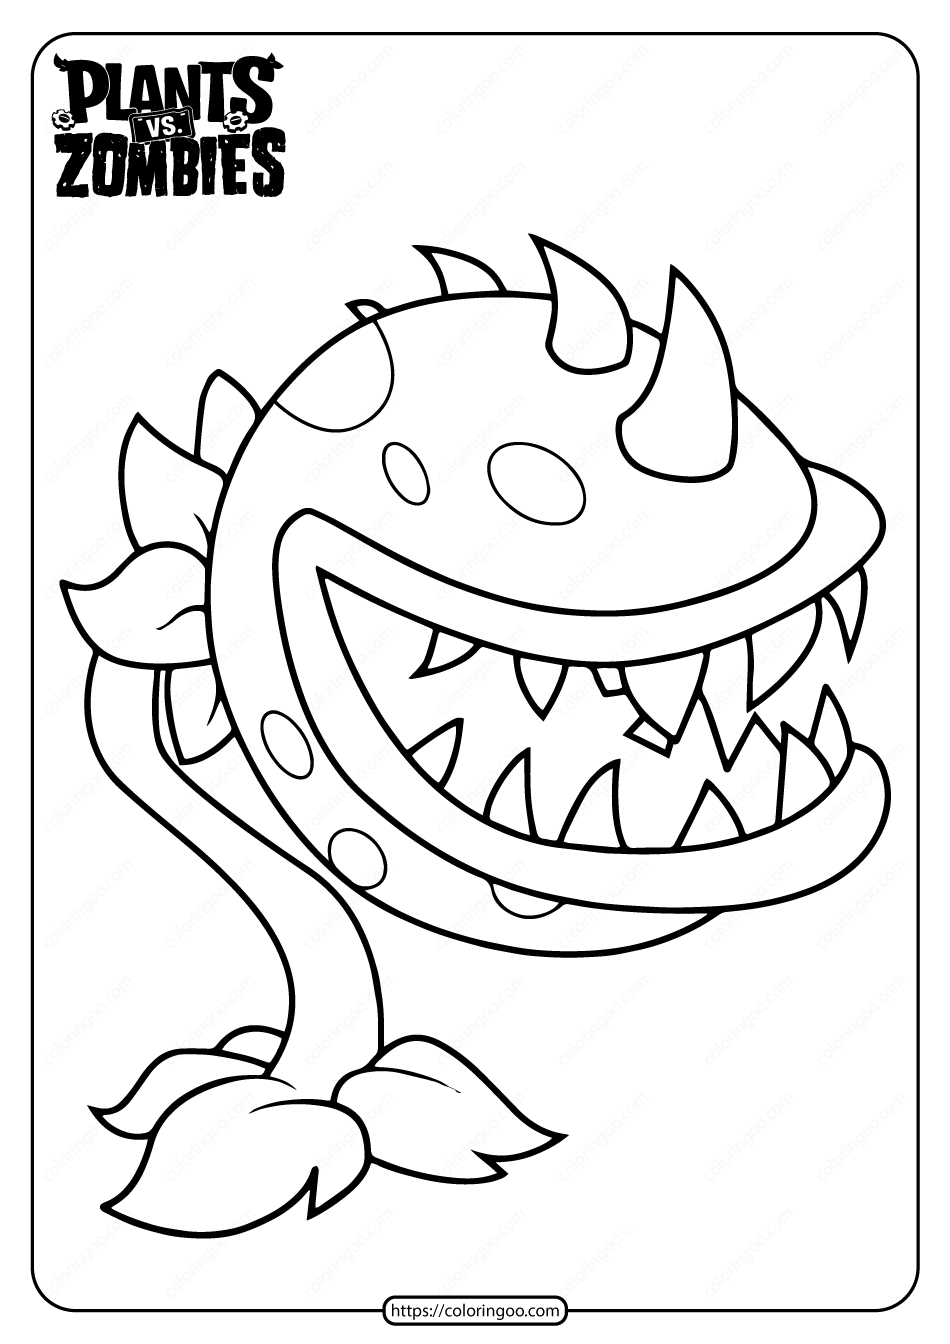 plants vs zombies coloring book plants vs zombies coloring pages to download and print for coloring book plants zombies vs